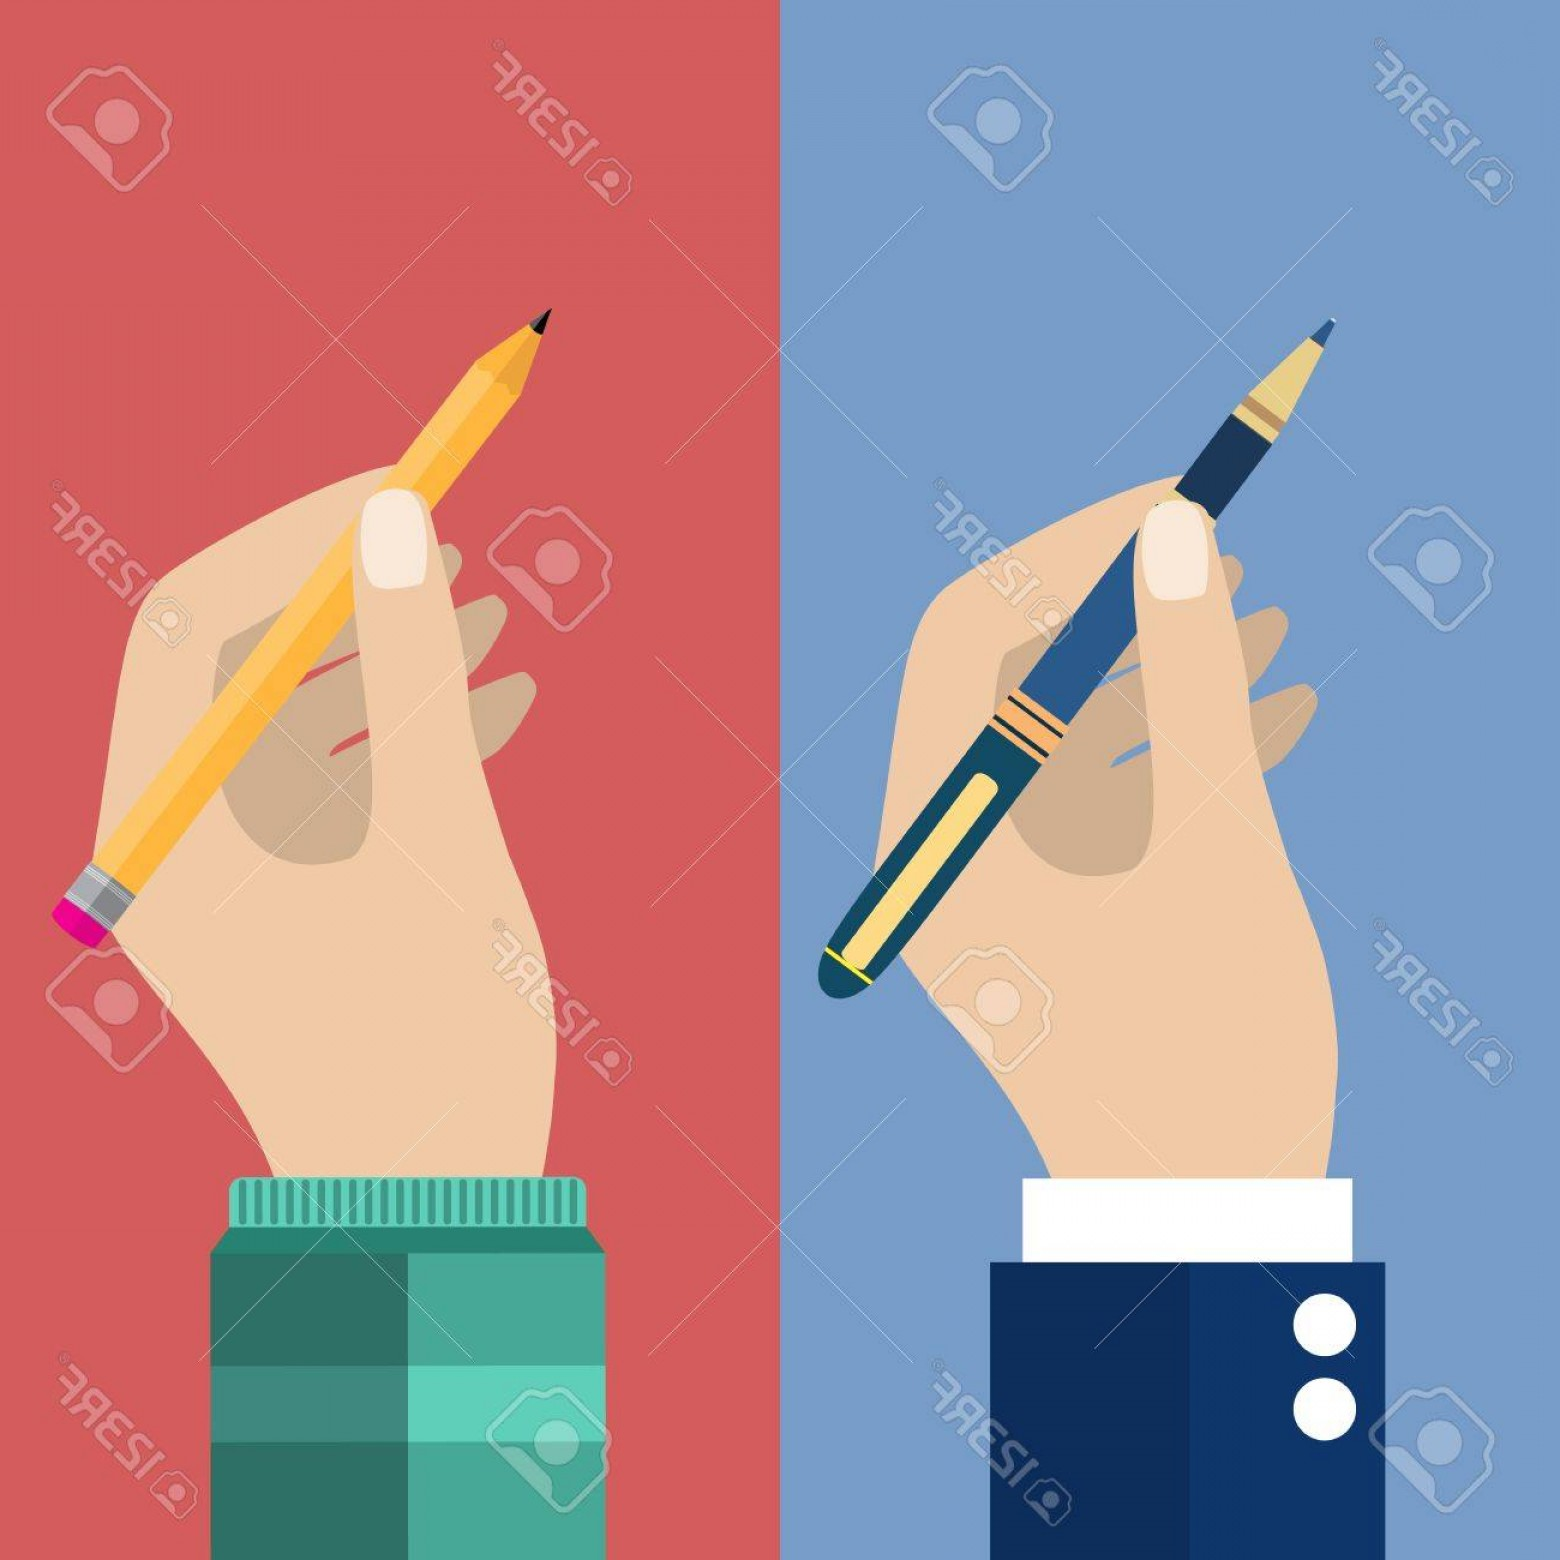 Notepad Writing Hand Vector: Photostock Vector Man Holding A Pencil And Pen For Writing Vector Illustration In Flat Design Writer Journalist Studen